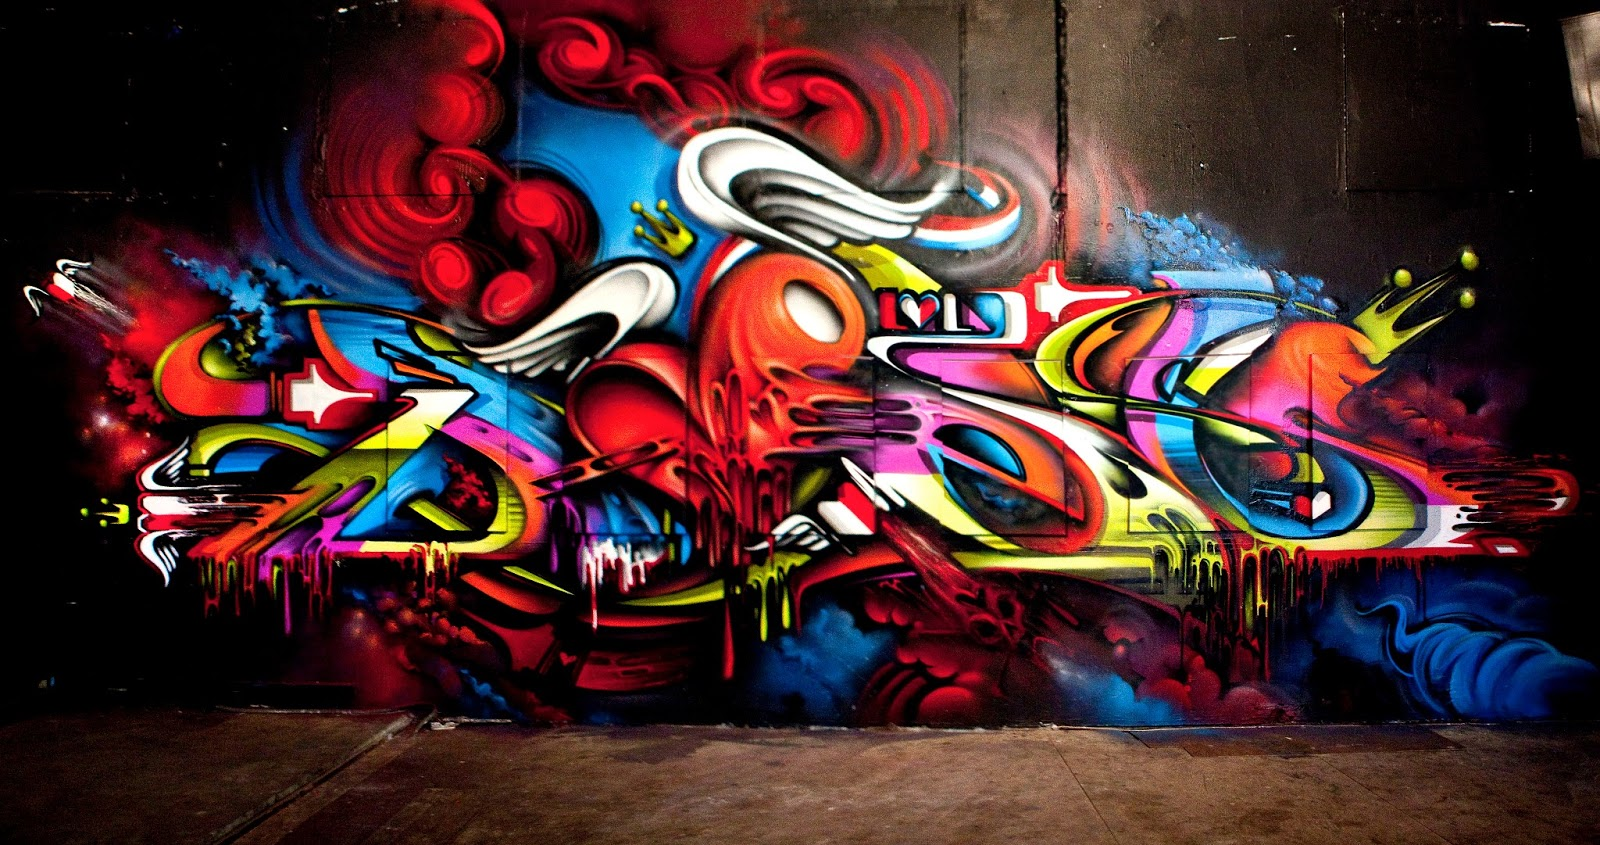 Gambar Graffiti Indonesia | Share The Knownledge